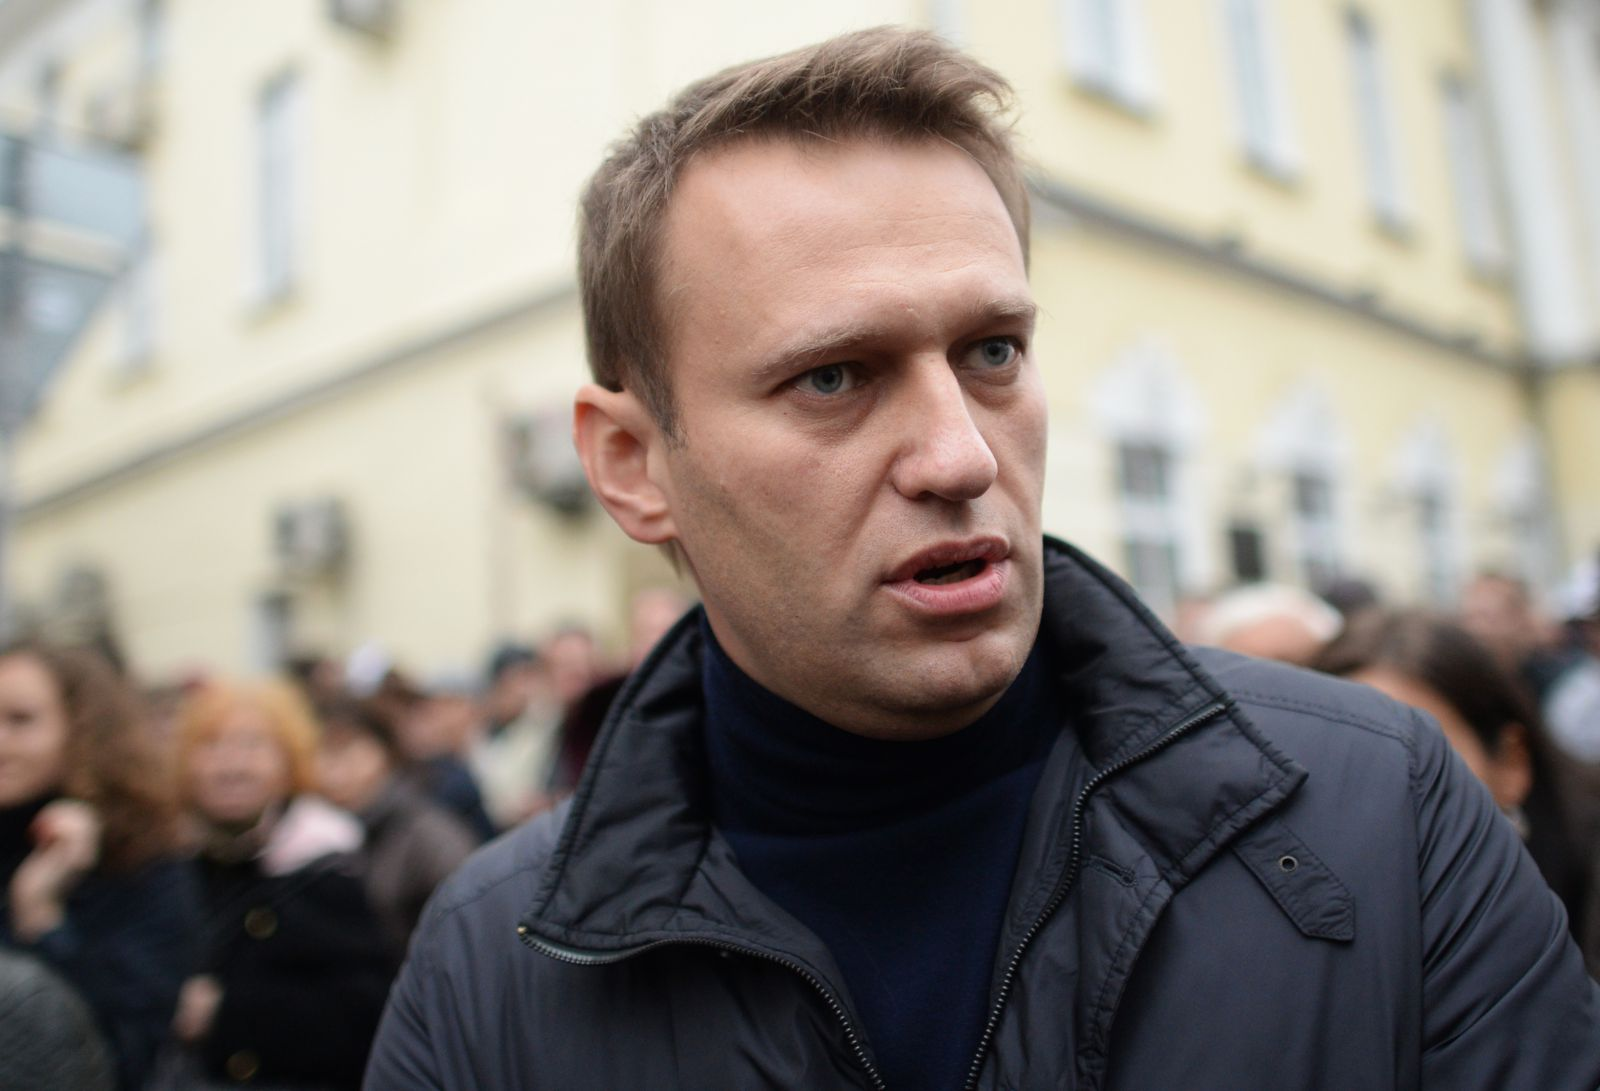 68 people were arrested due to Navalny